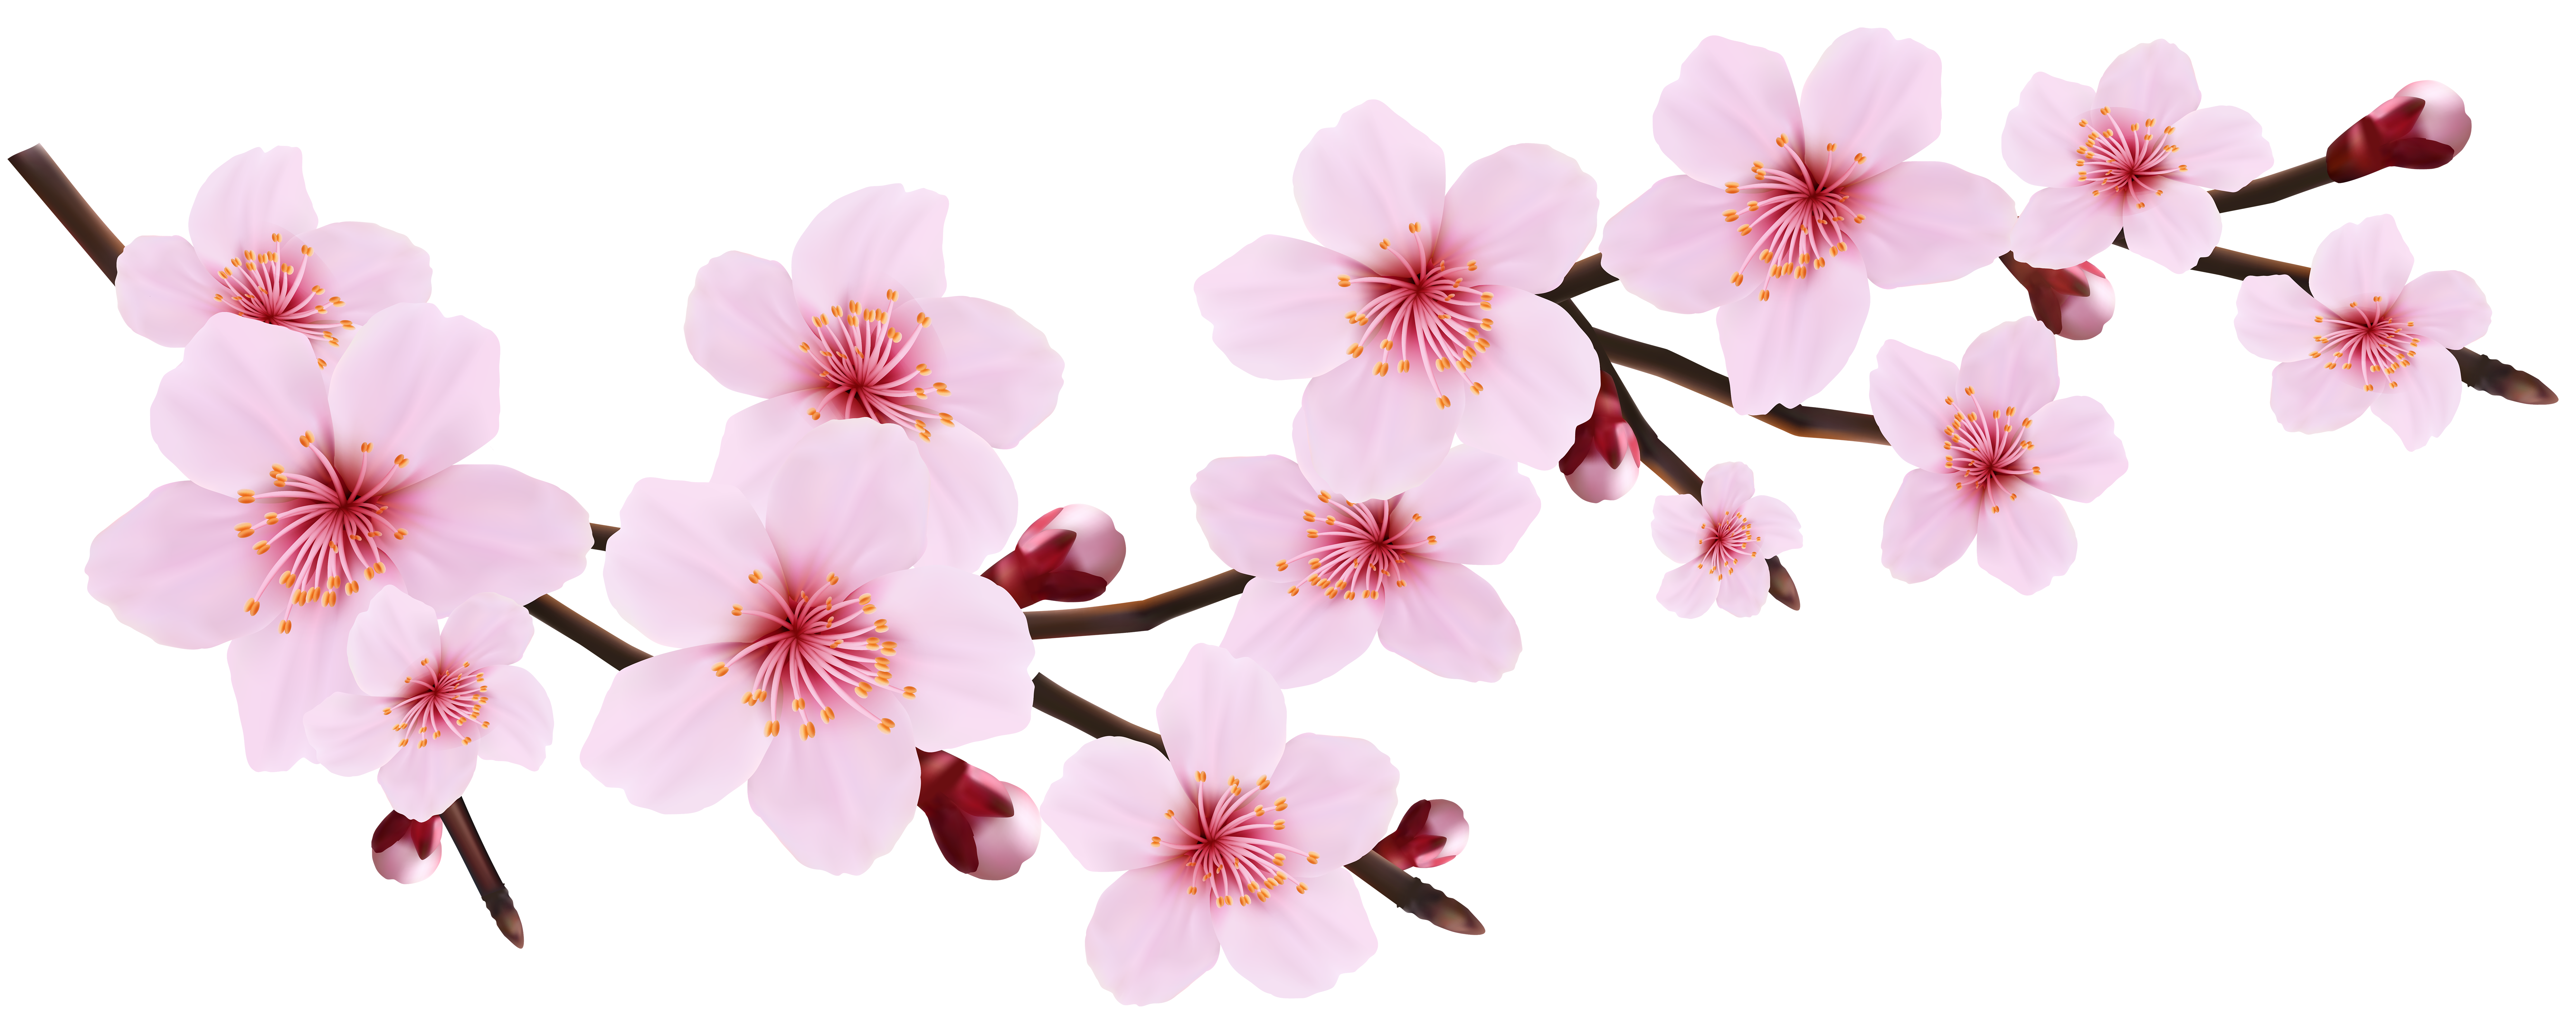 Cherry blossom png. Spring pink twig transparent